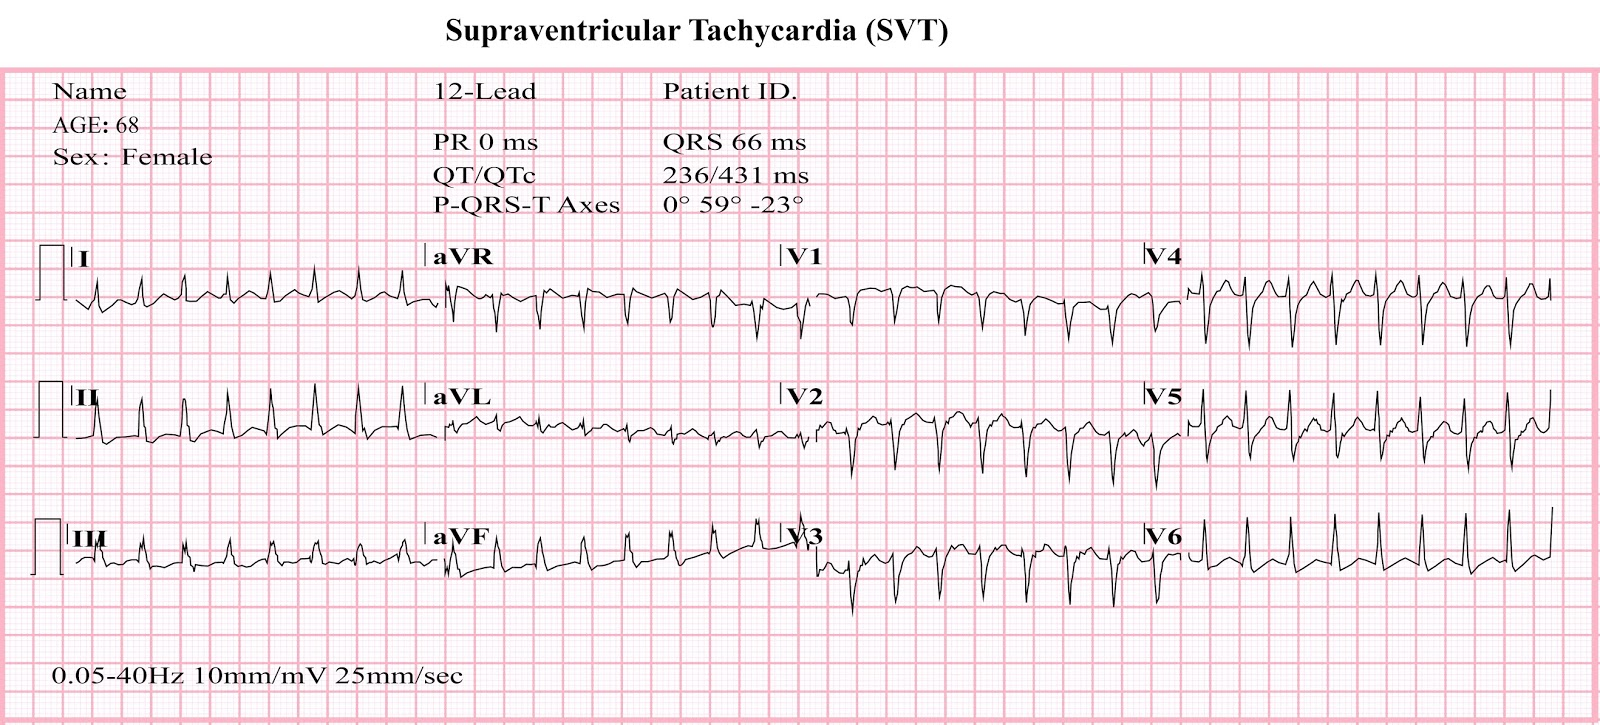 supraventricular tachycardia svt Supraventricular tachycardia (svt) is a rapid heart rate (100 beats or more per minute, but usually faster like 140-250 beats per minute) due to electrical impulses that originate in the upper ventricles of the heart.